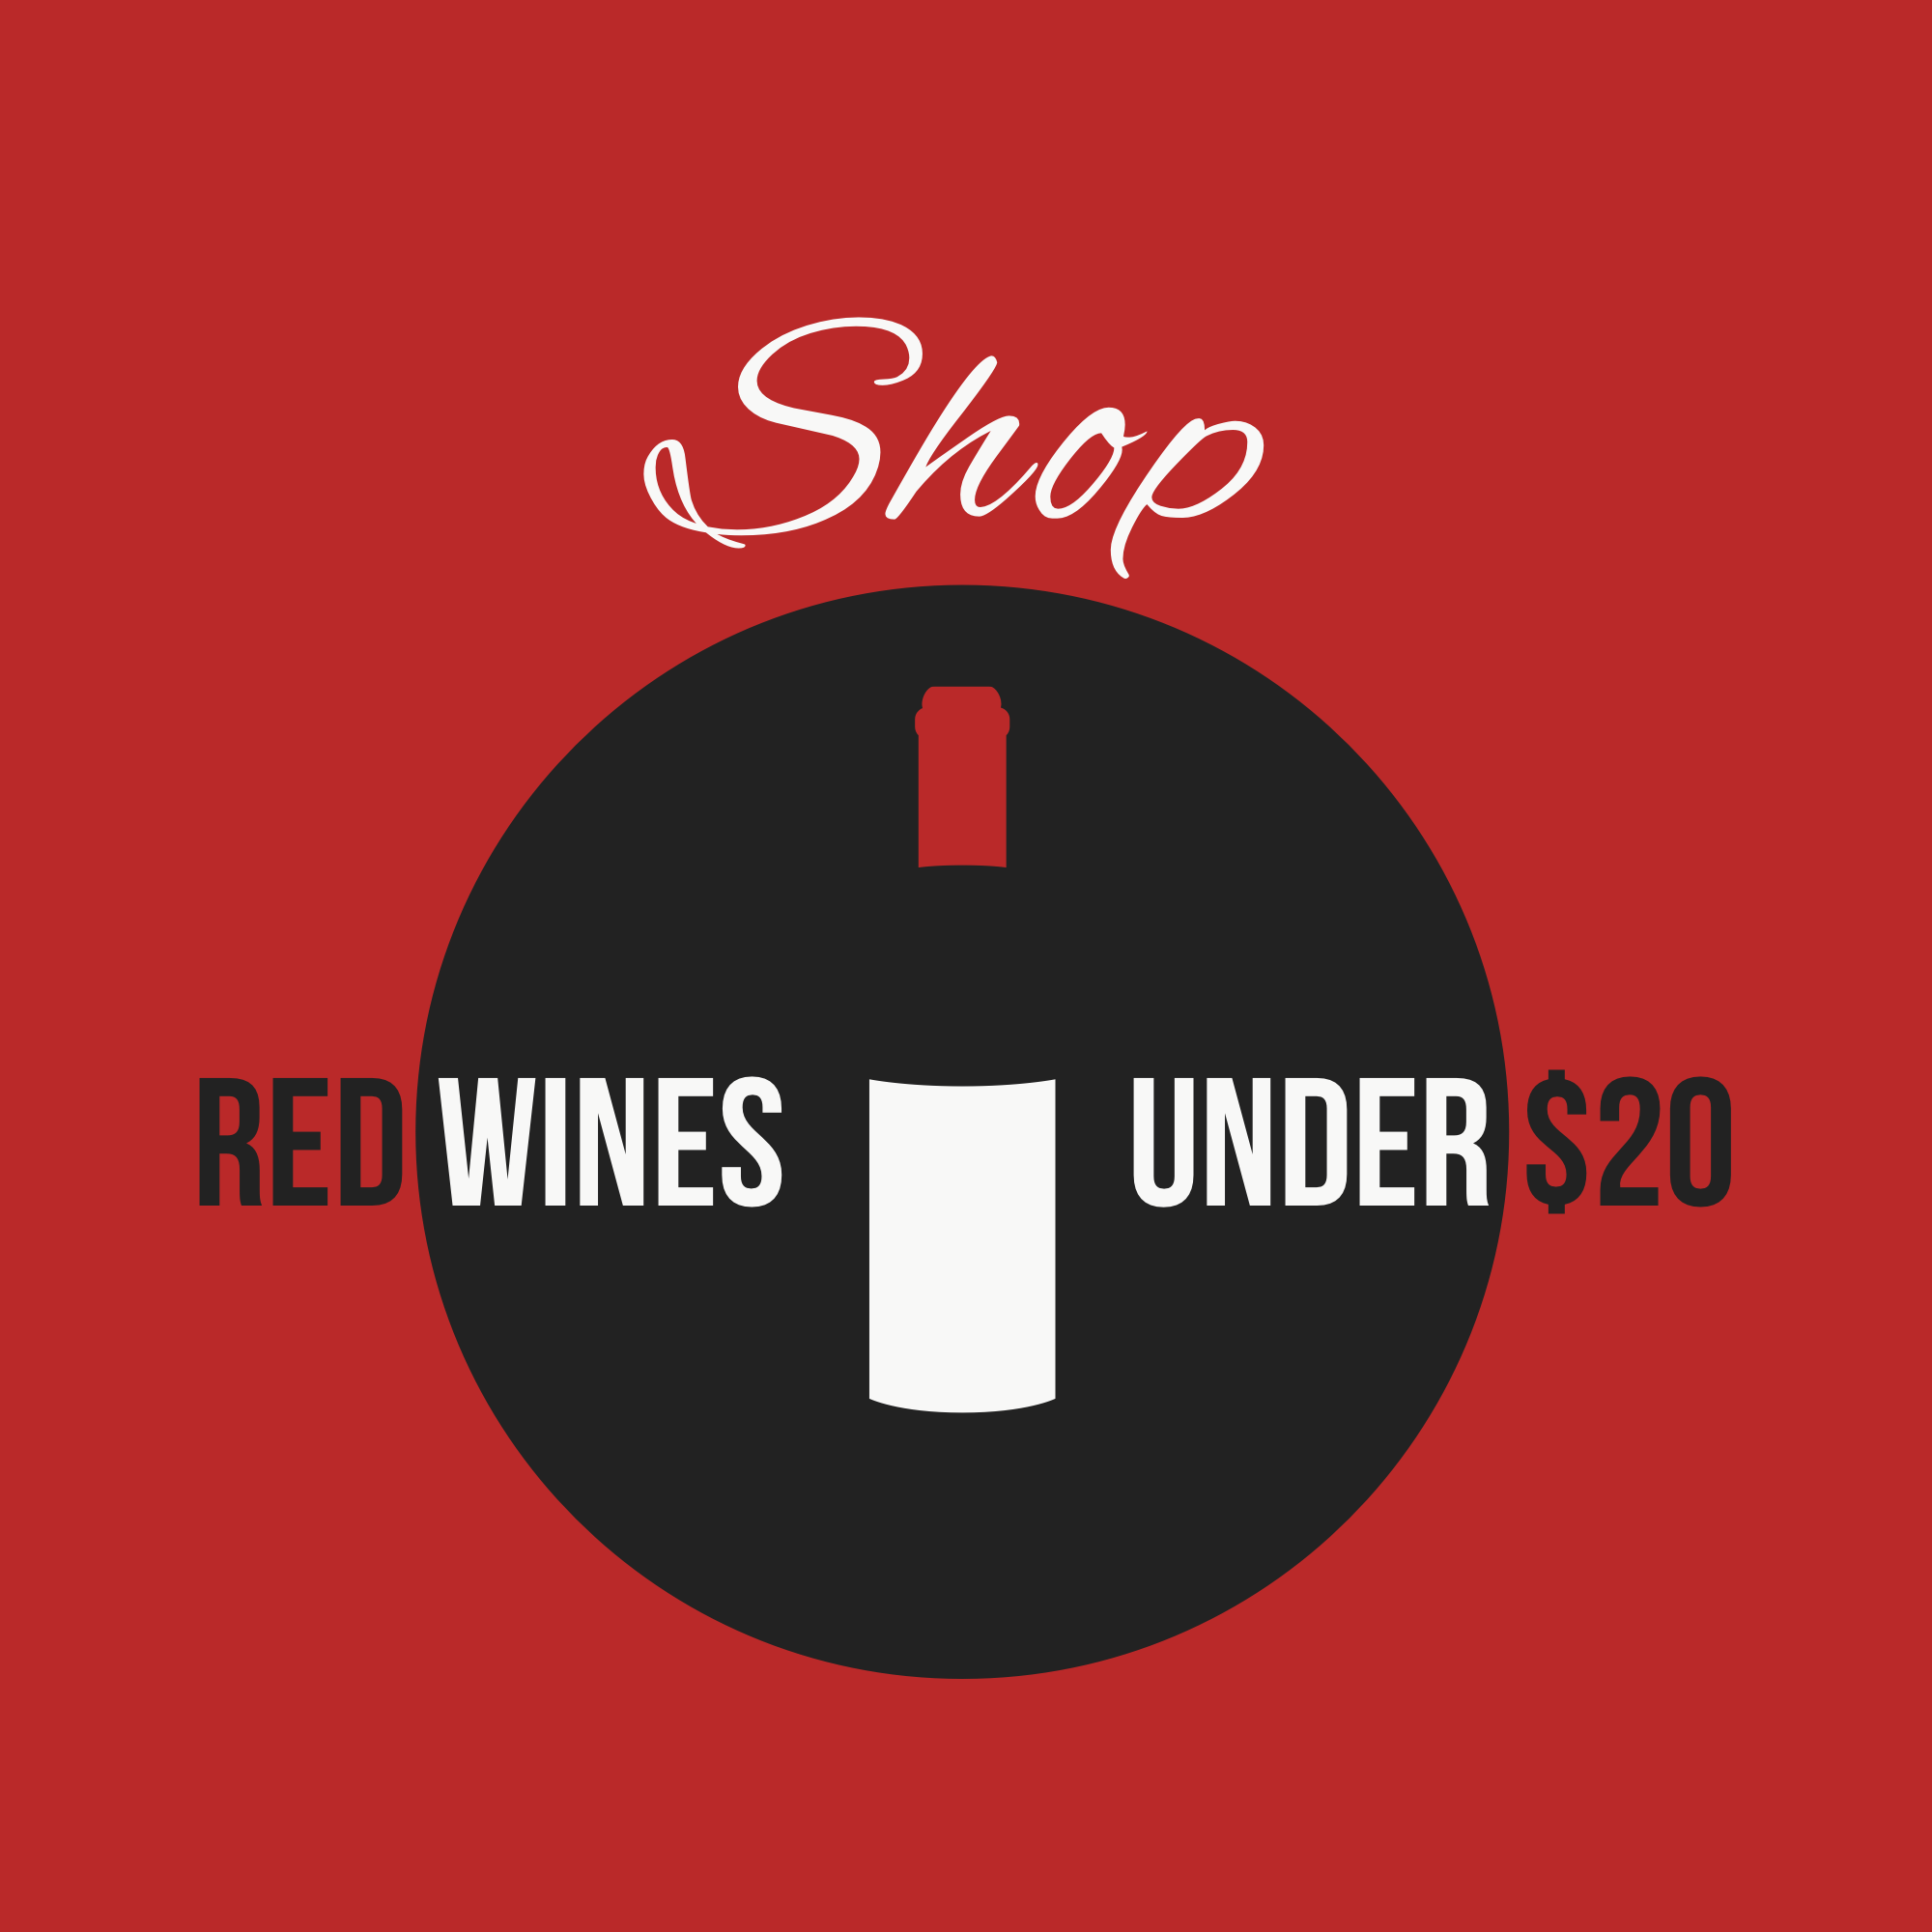 shop red wines under $20